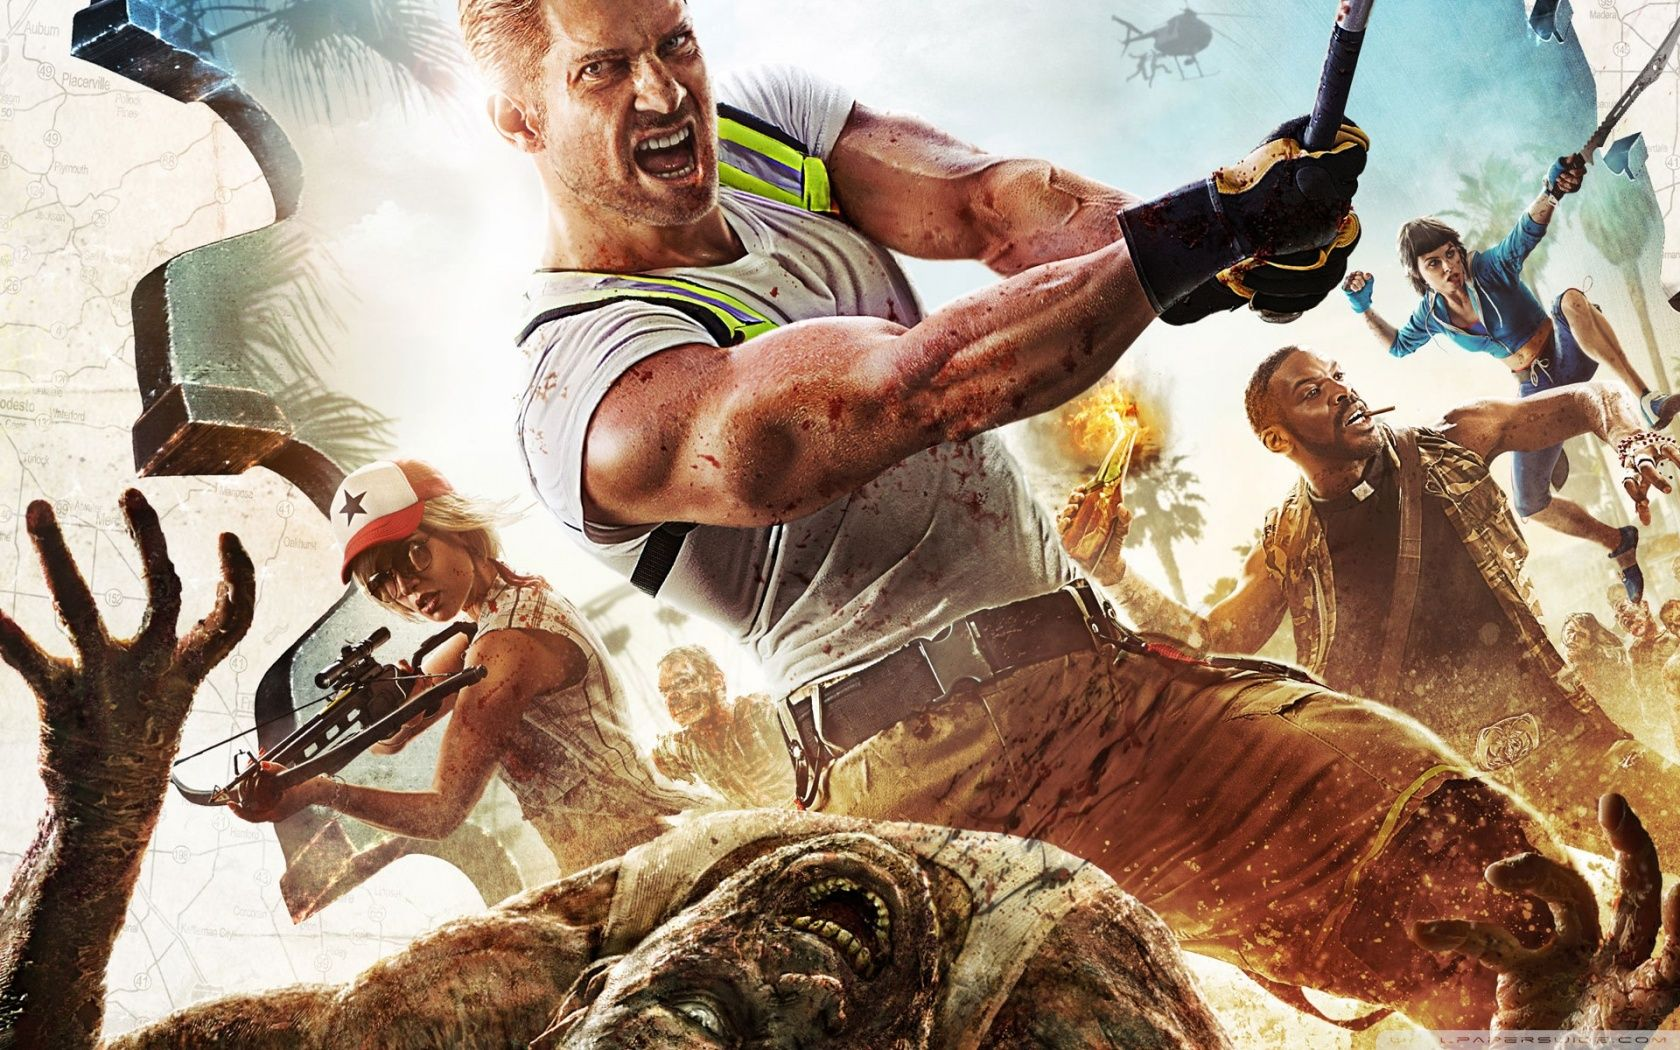 Dead Island 2 Hd Wallpapers Videojuegos Zombis Xbox One